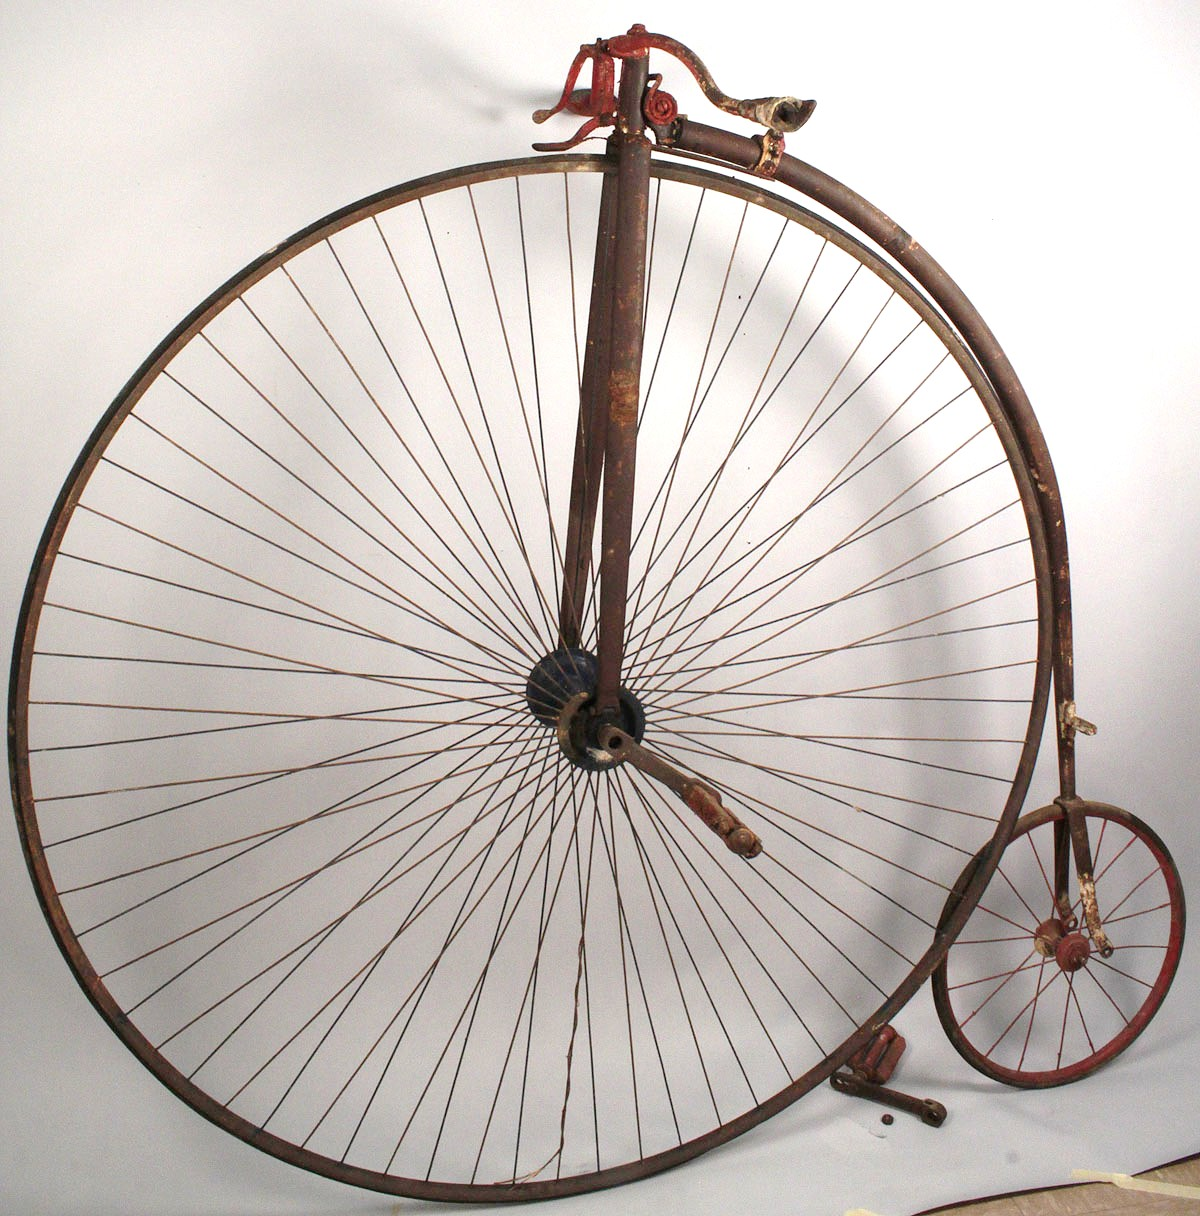 Lot 680 High Wheeler Bicycle Circa 1875